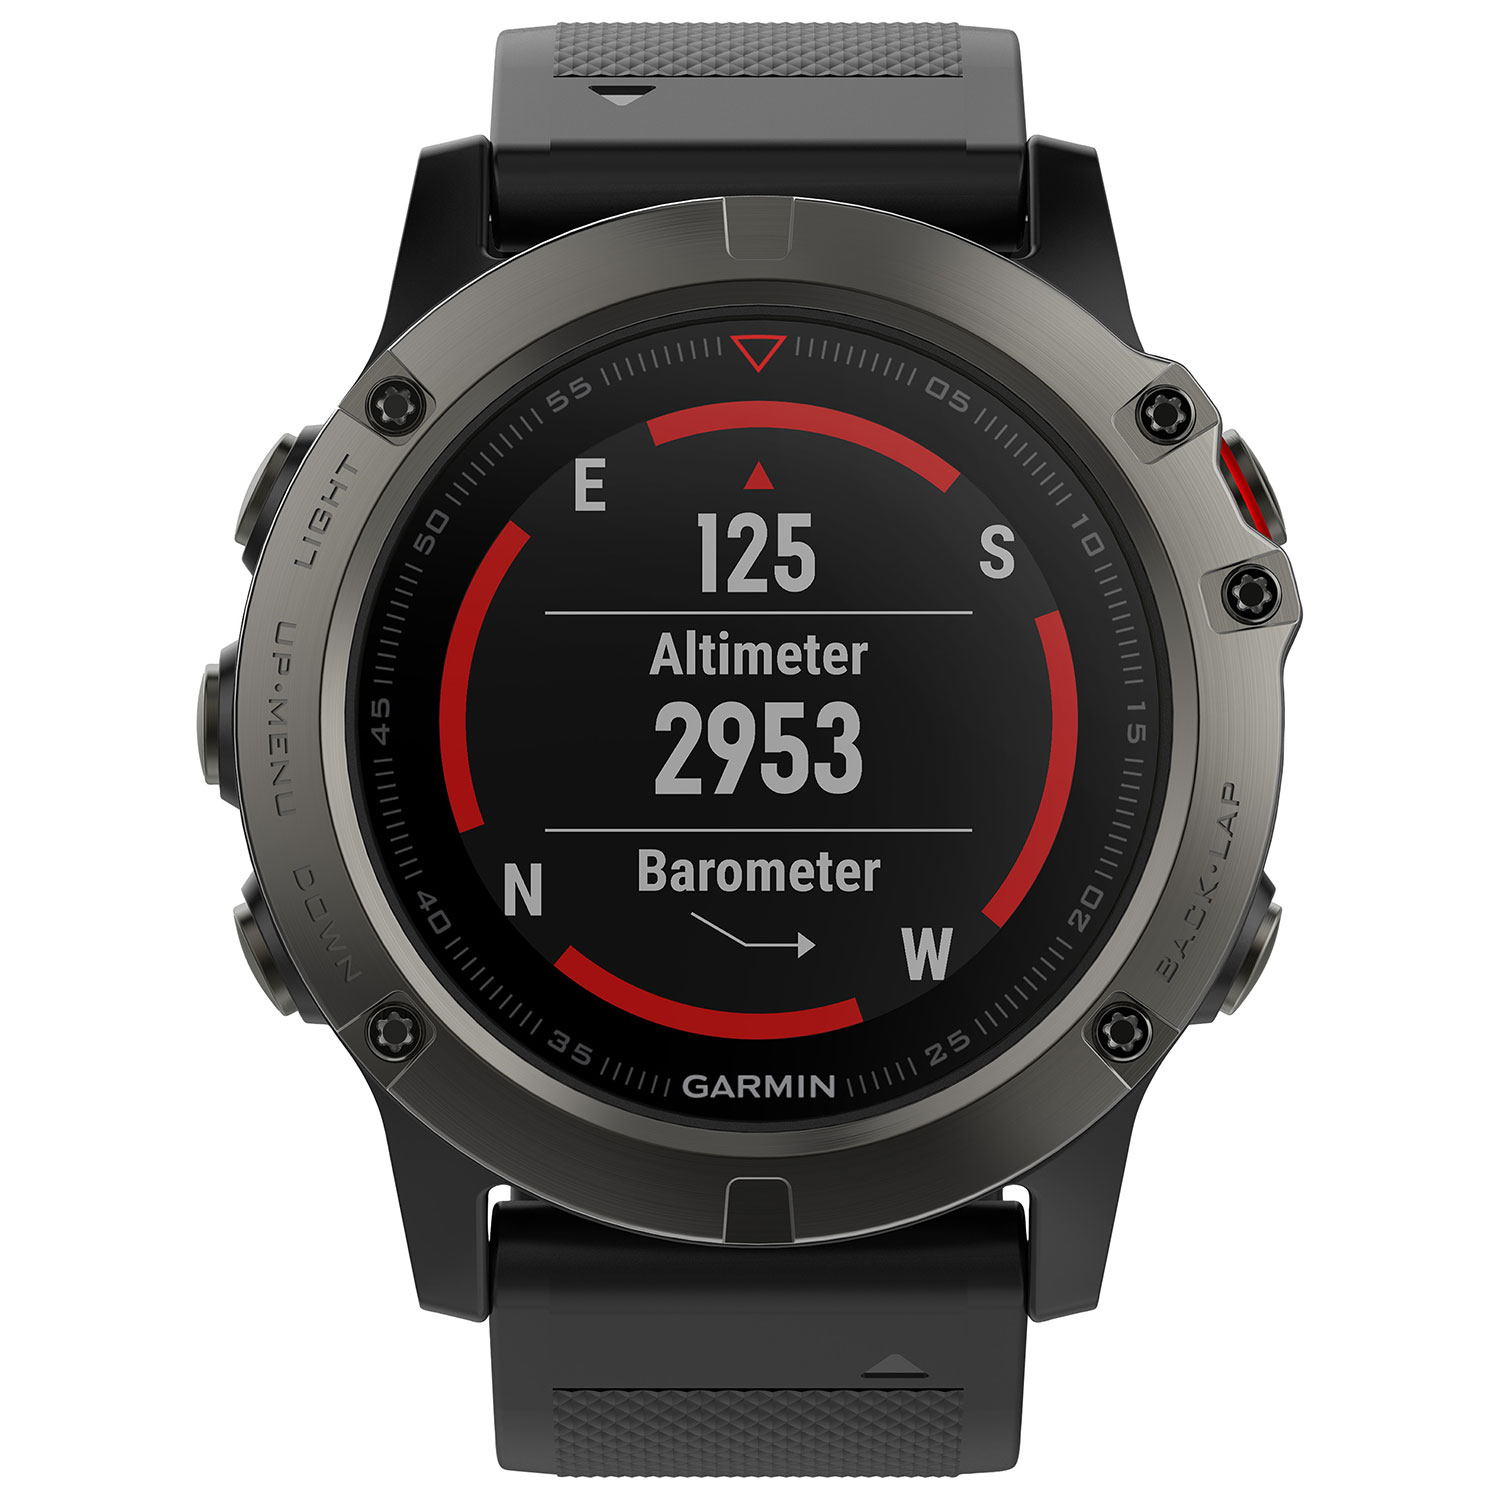 was round watch review a stays number rapid awake revie watches linking satellite during skycaddie glance to the wrist but at fairly your initial get requiring gps